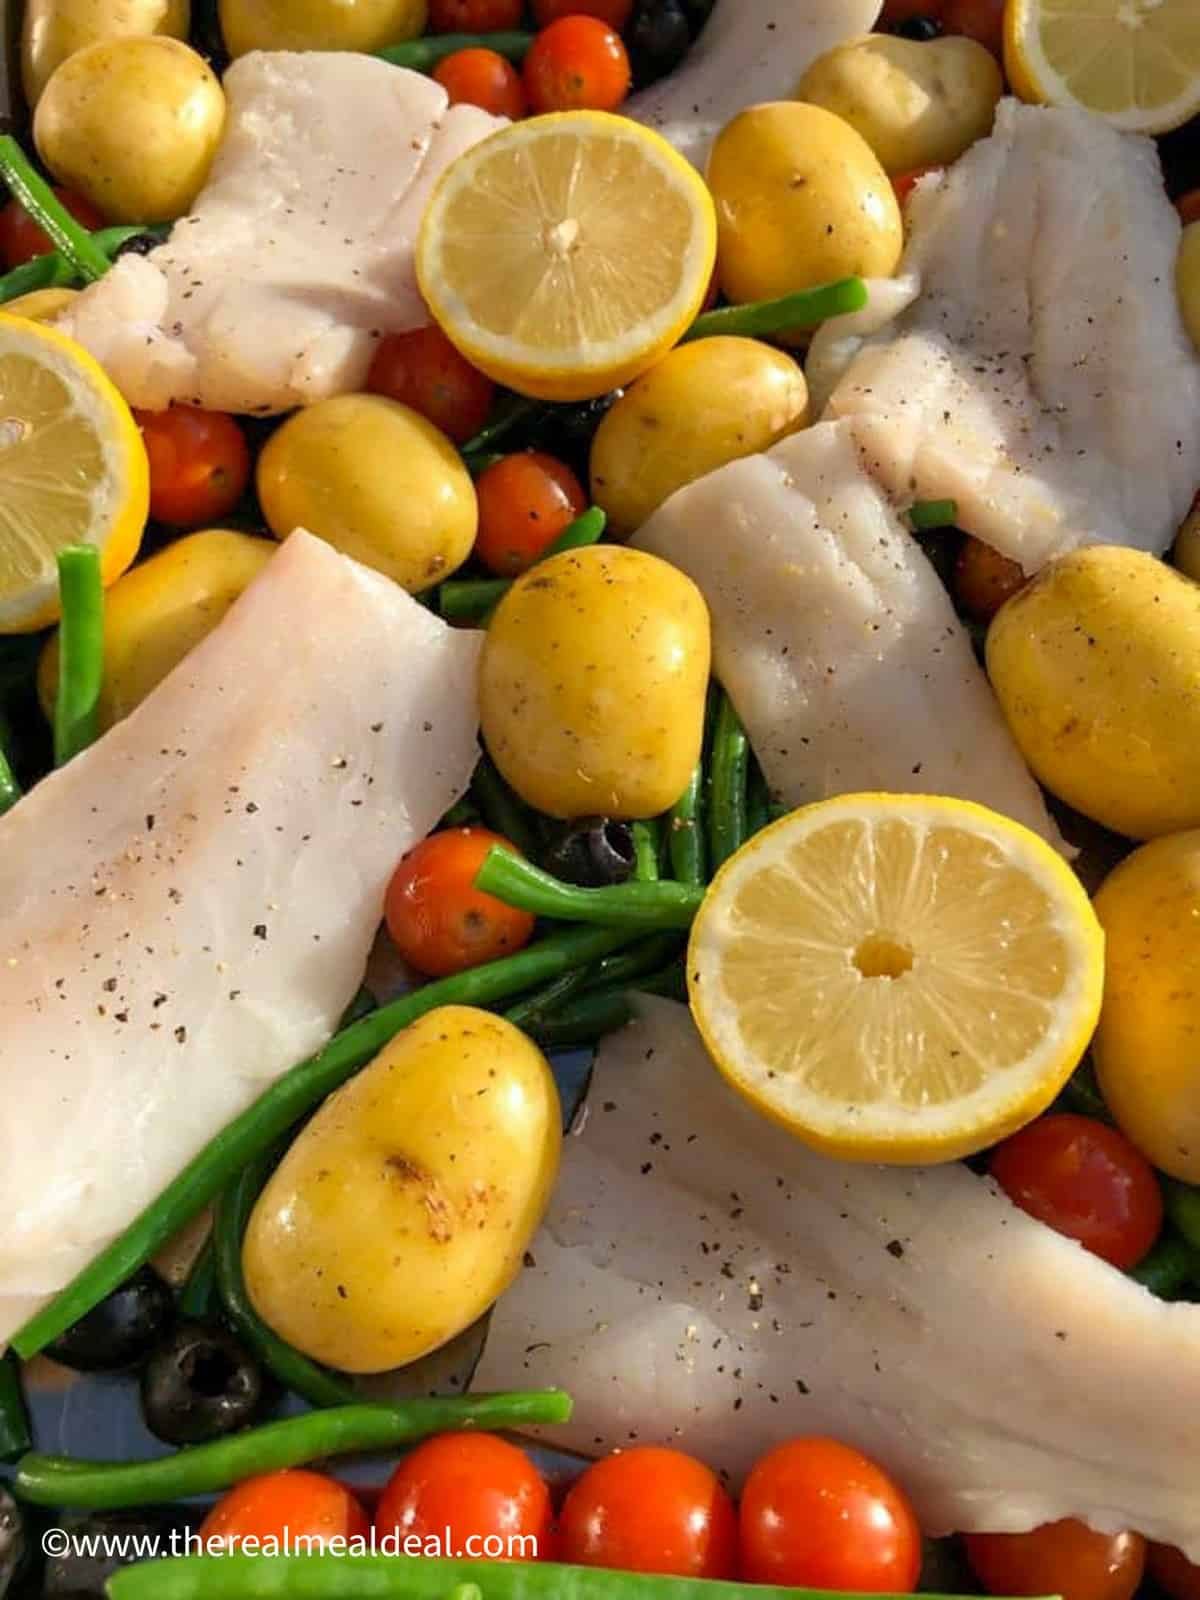 cod green beans cherry tomatoes black olives and new potatoes in tray ready for roasting seasoned with black pepper